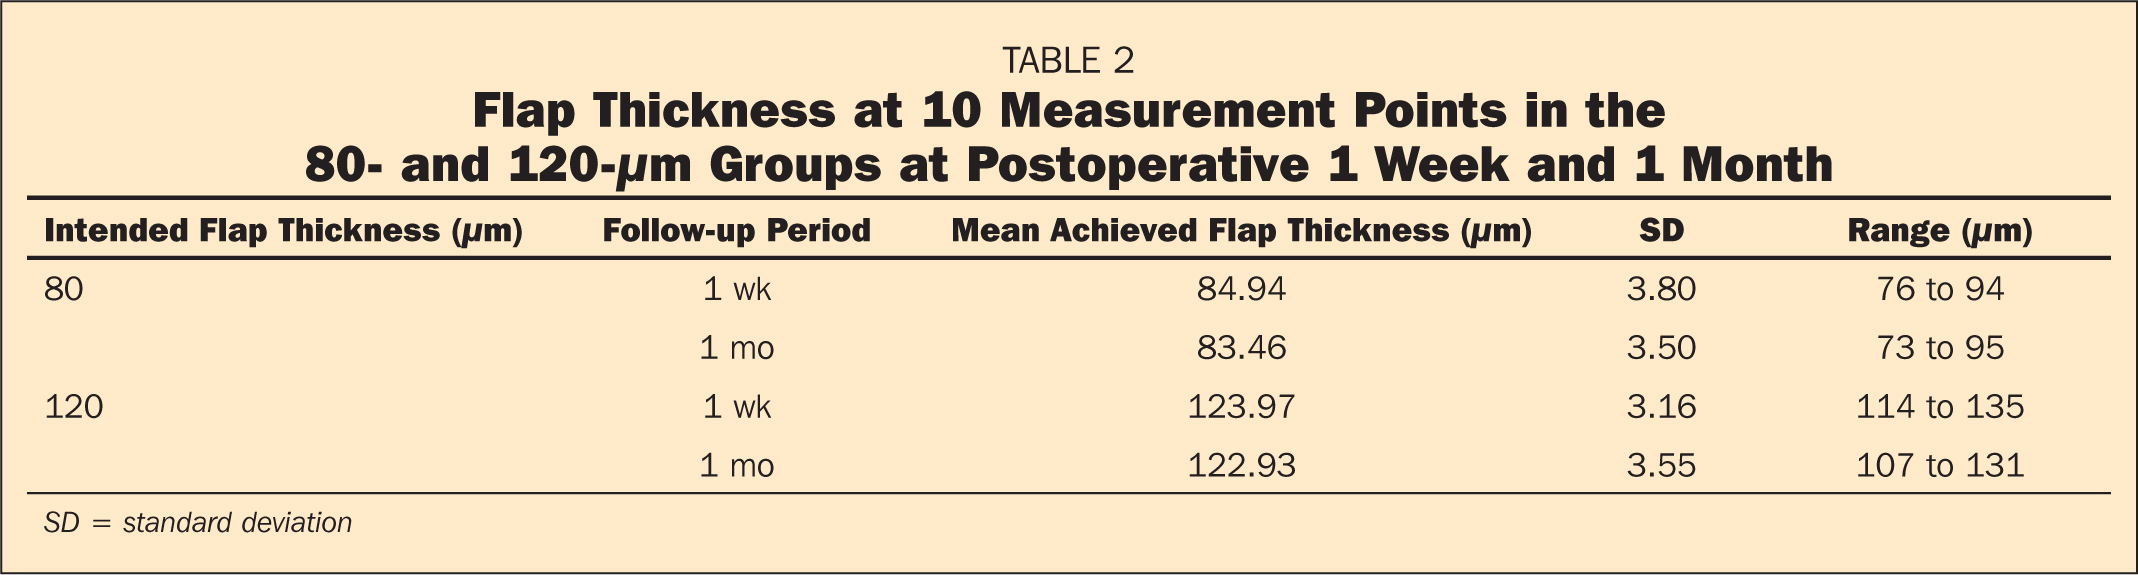 Flap Thickness at 10 Measurement Points in the 80- and 120-μm Groups at Postoperative 1 Week and 1 Month